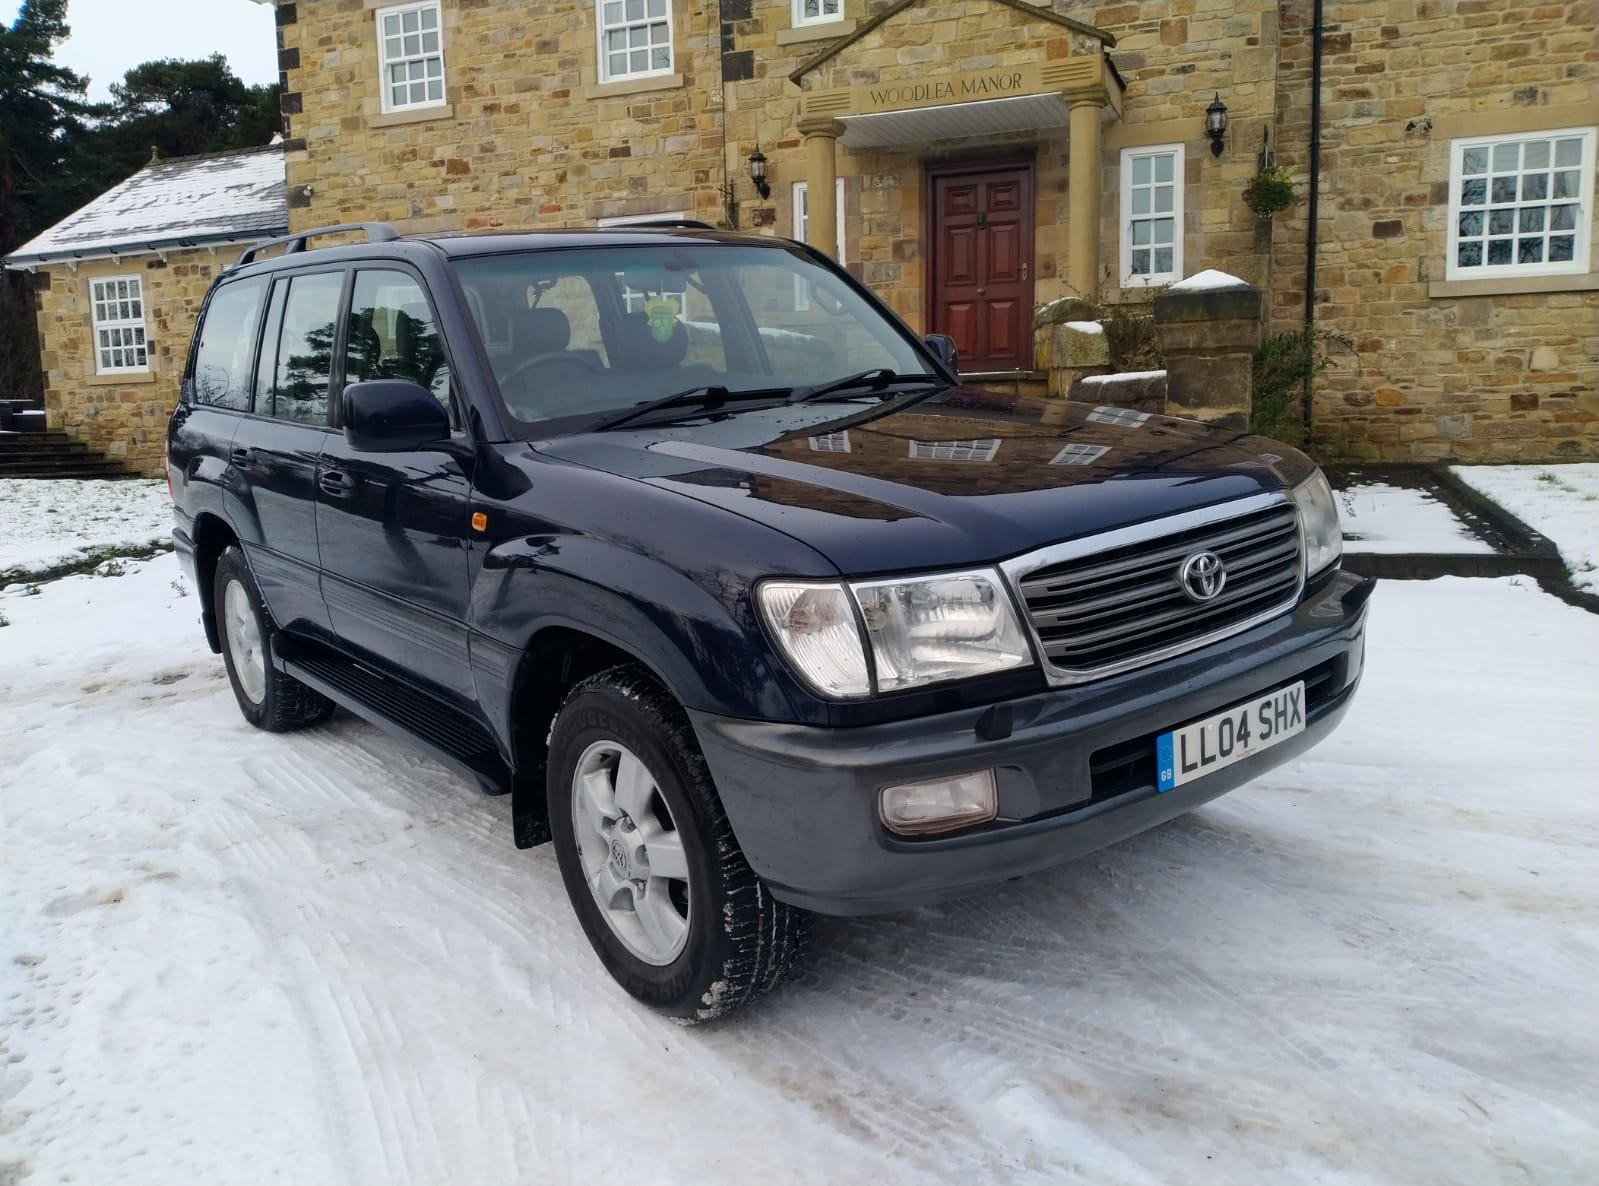 2004 Toyota Land cruiser Amazon TD 4.2 Auto For Sale (picture 2 of 12)